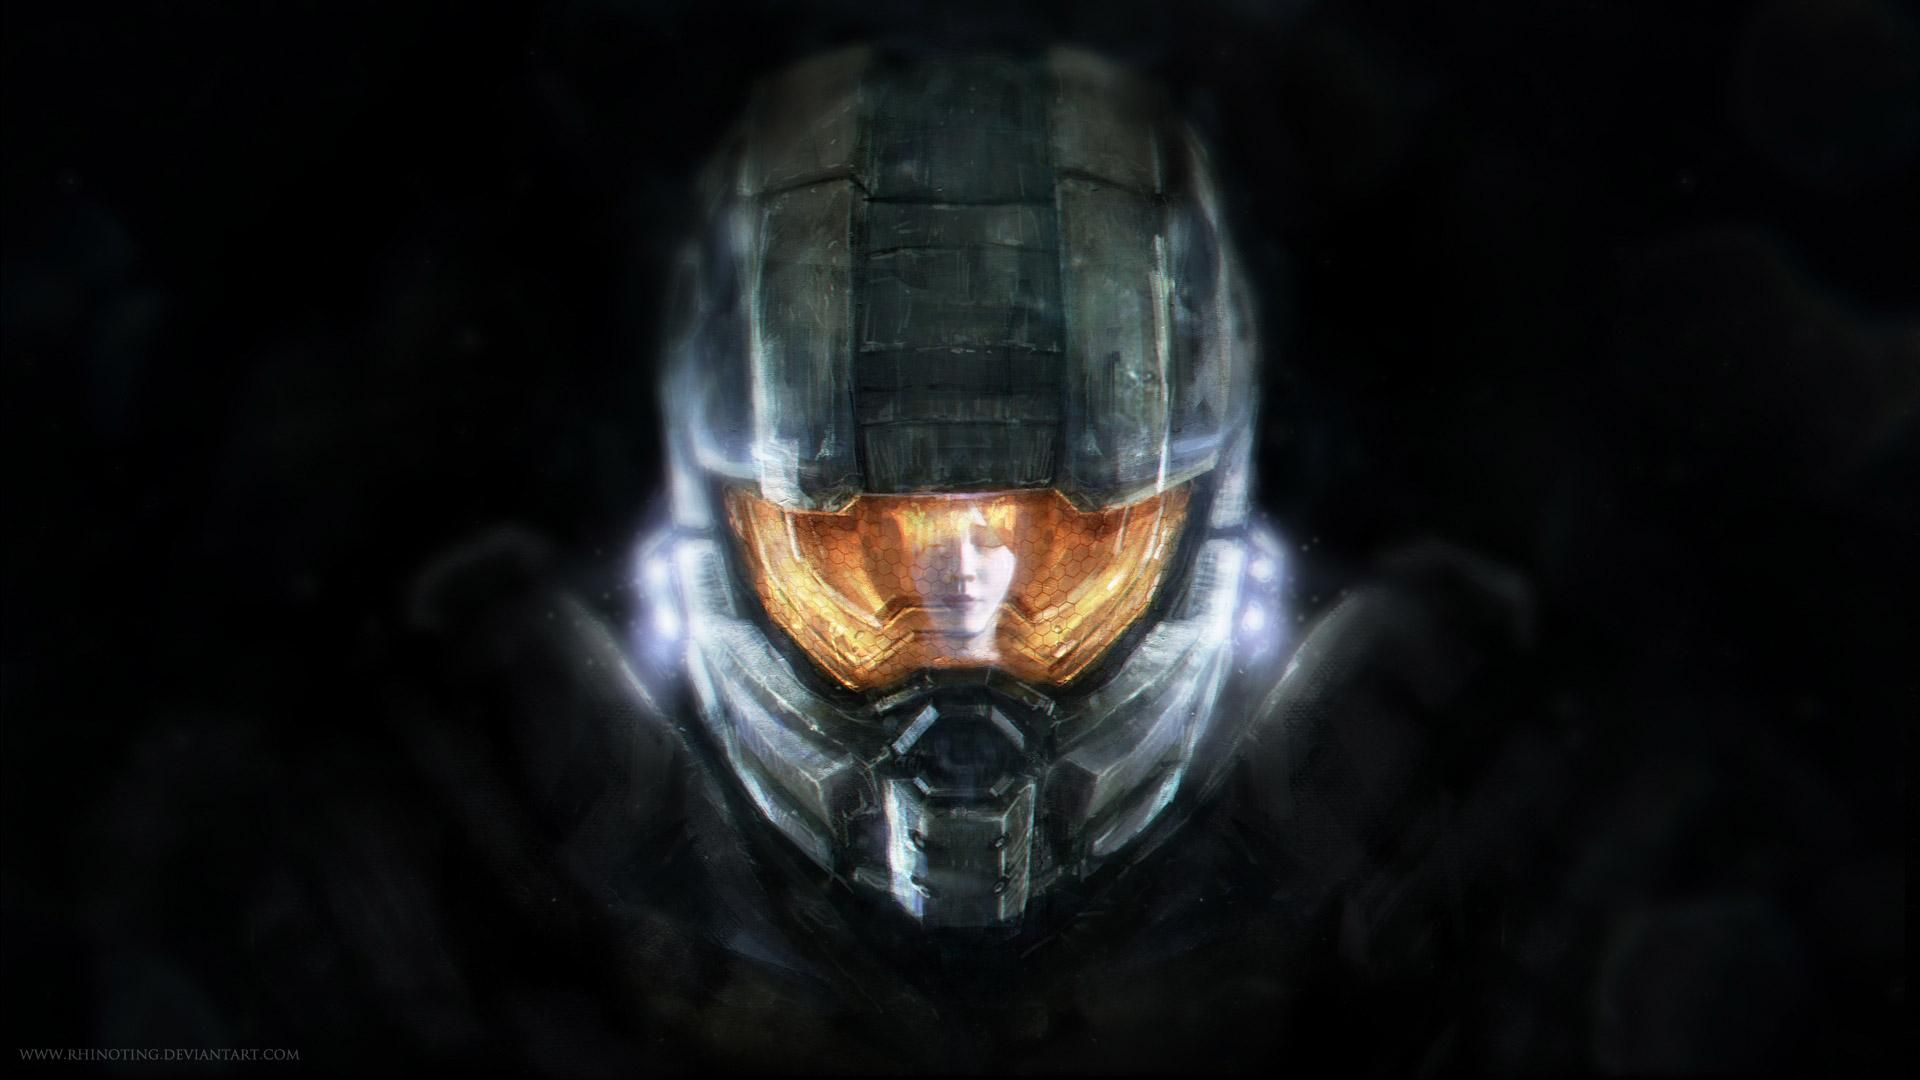 Halo Wallpaper Pictures 19201080 Halo 4 Wallpapers Hd 51